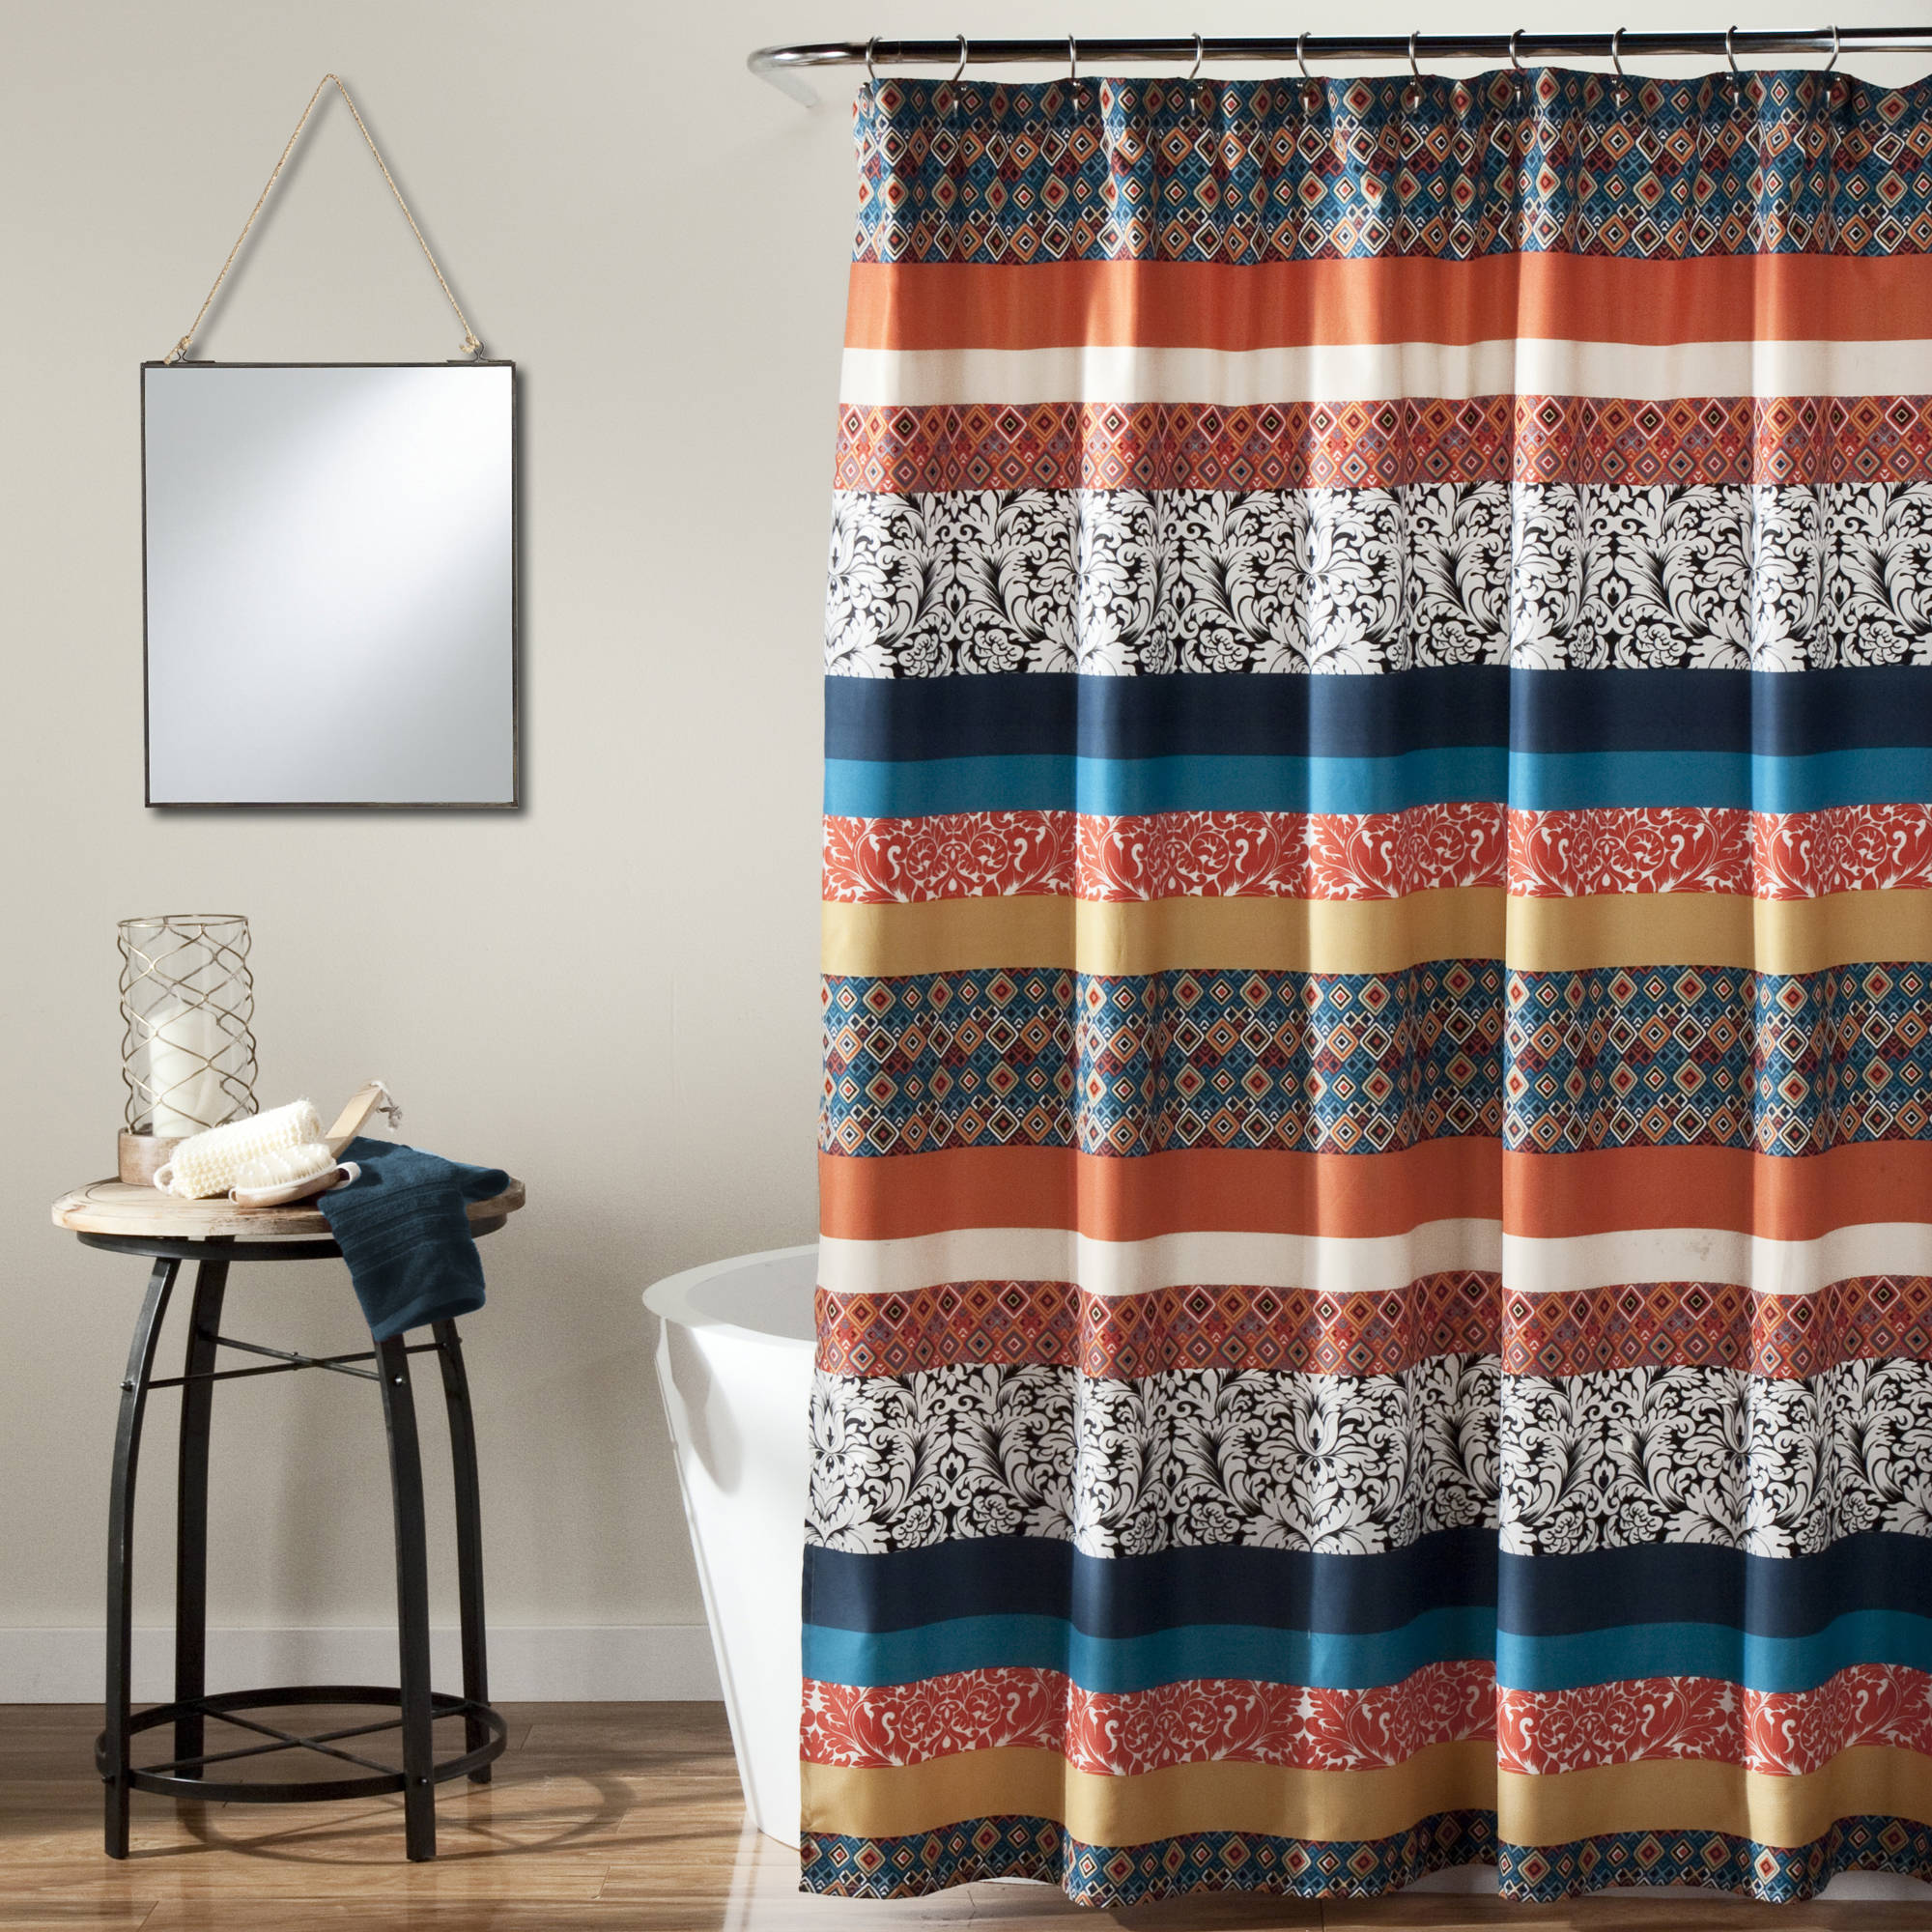 orange and black shower curtain.  Boho Stripe Shower Curtain Turquoise Tangerine Walmart com